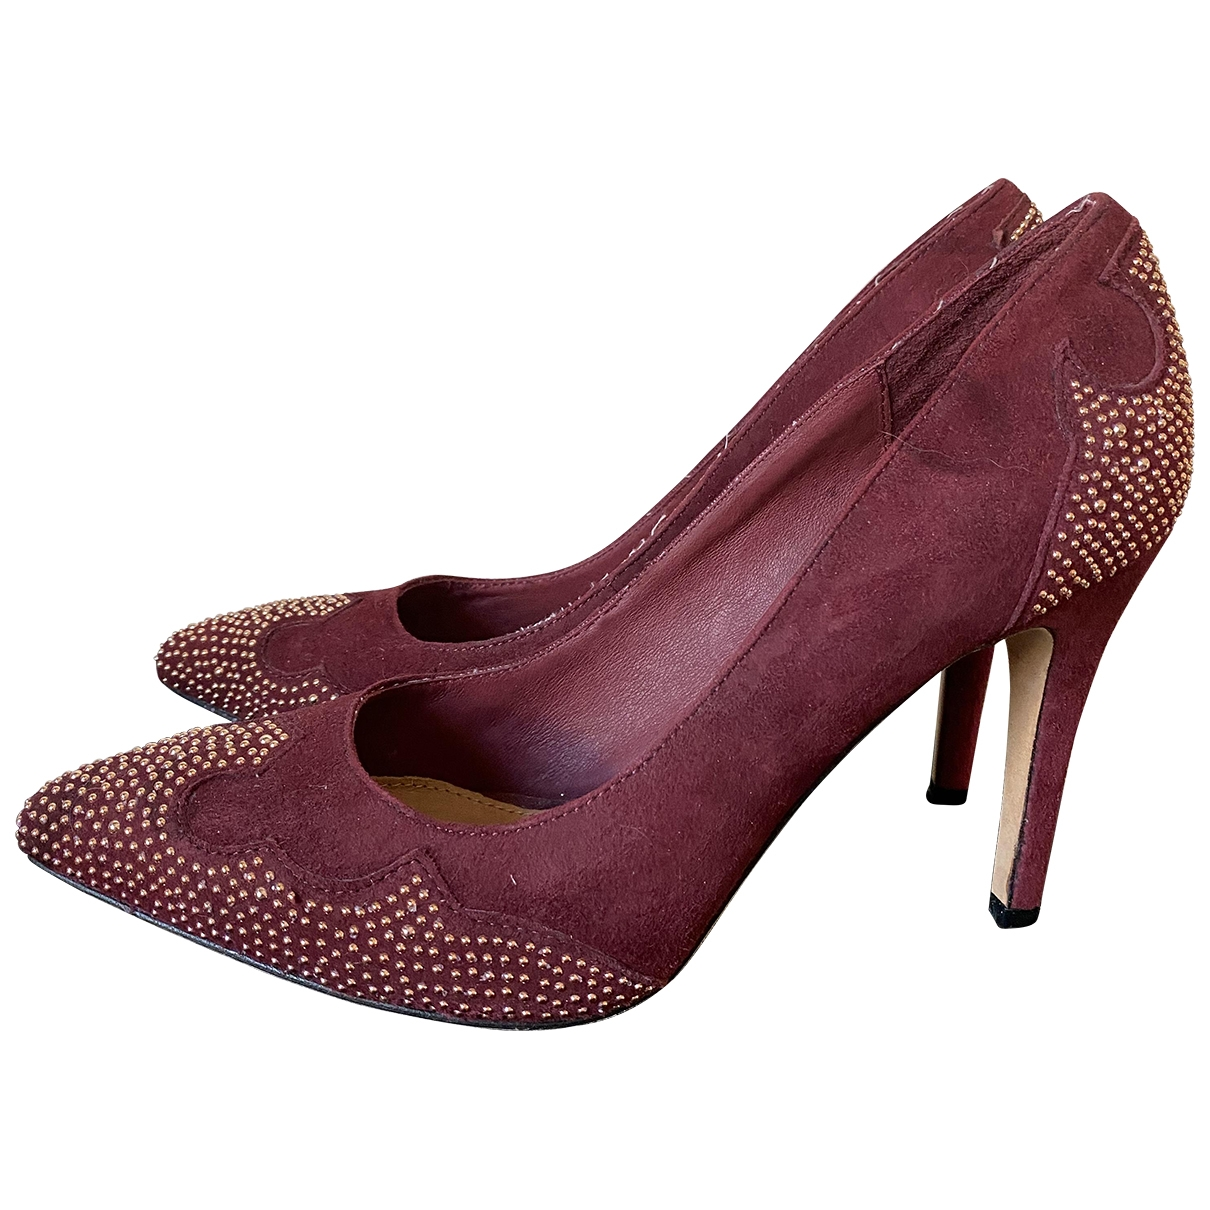 Non Signé / Unsigned \N Burgundy Suede Heels for Women 39 EU